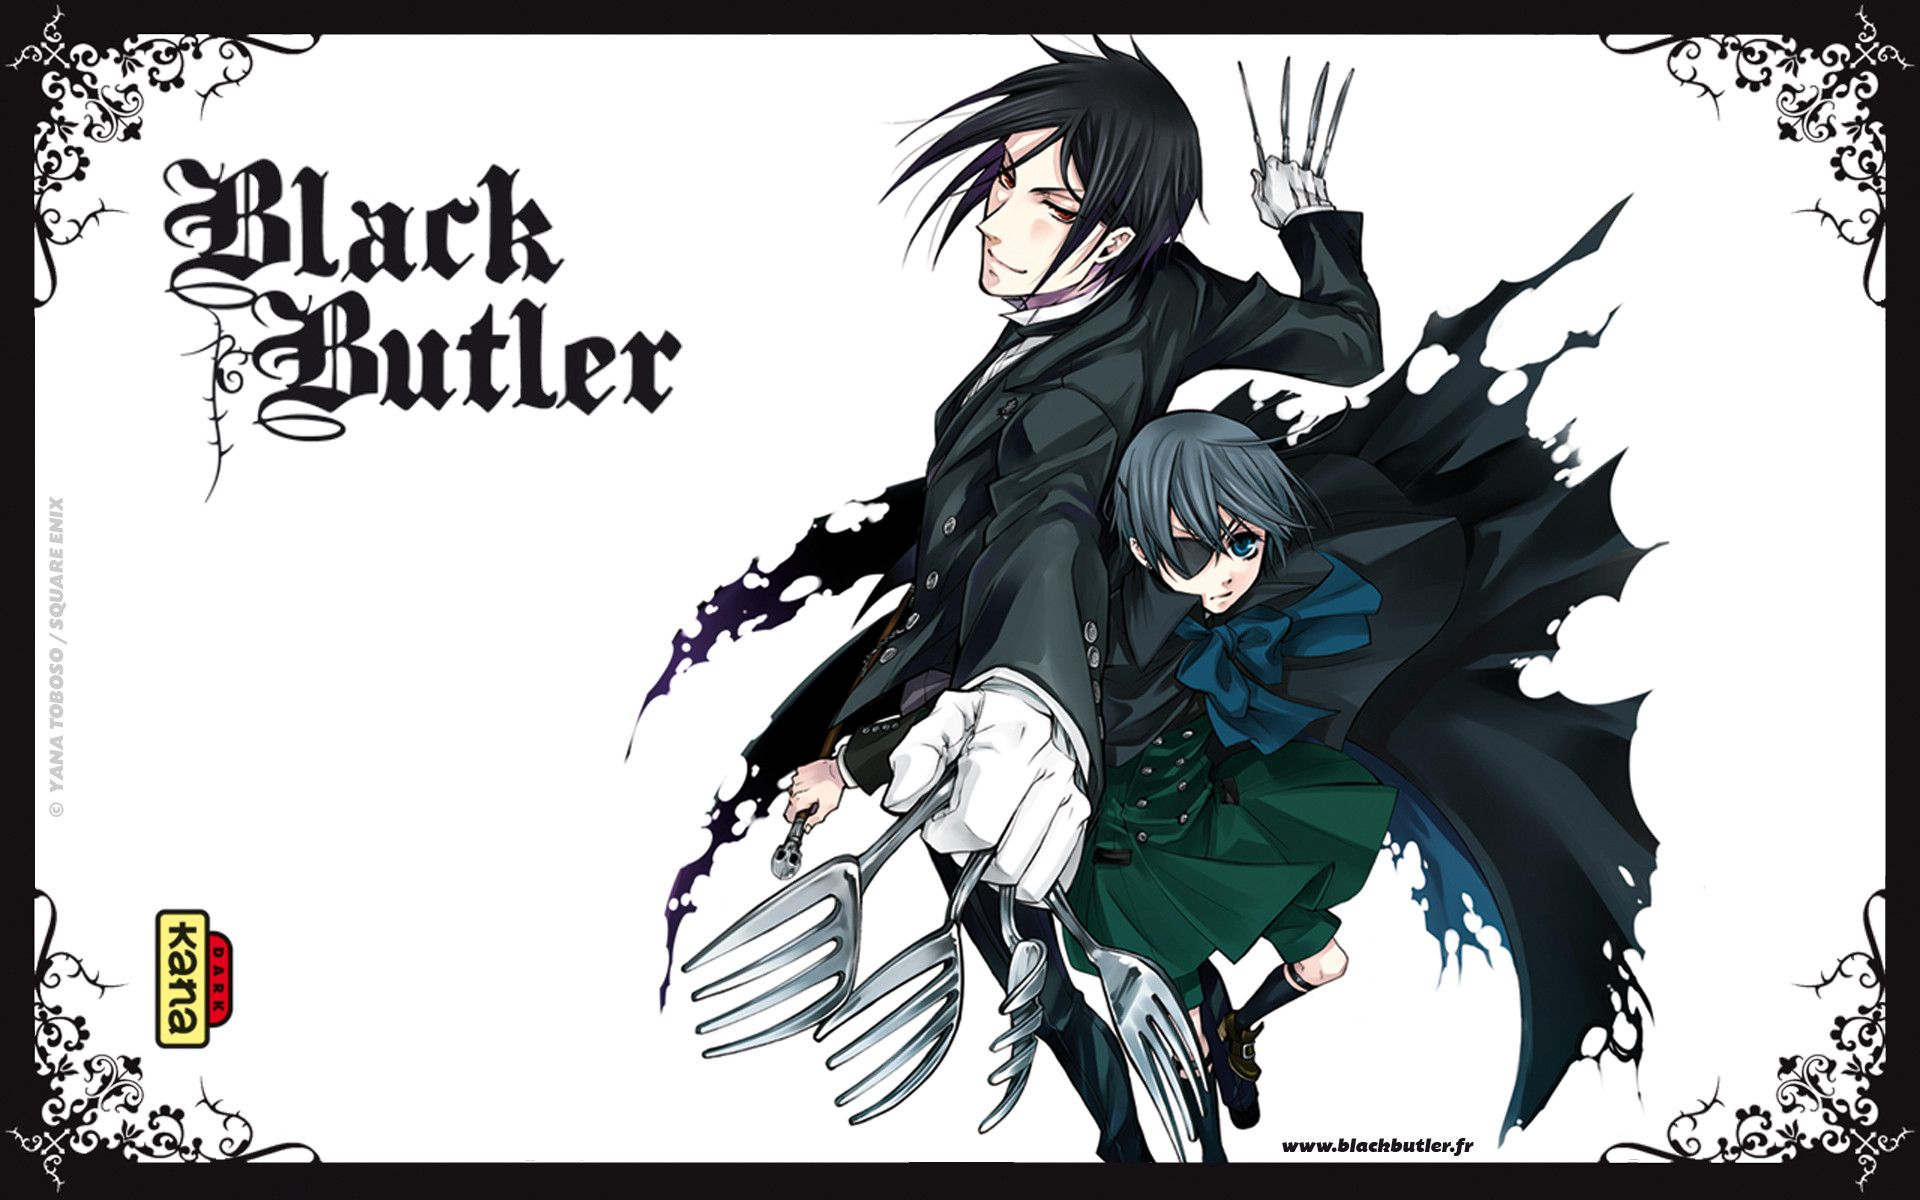 Black Butler: Book Of The Atlantic, 2nd PV Drops